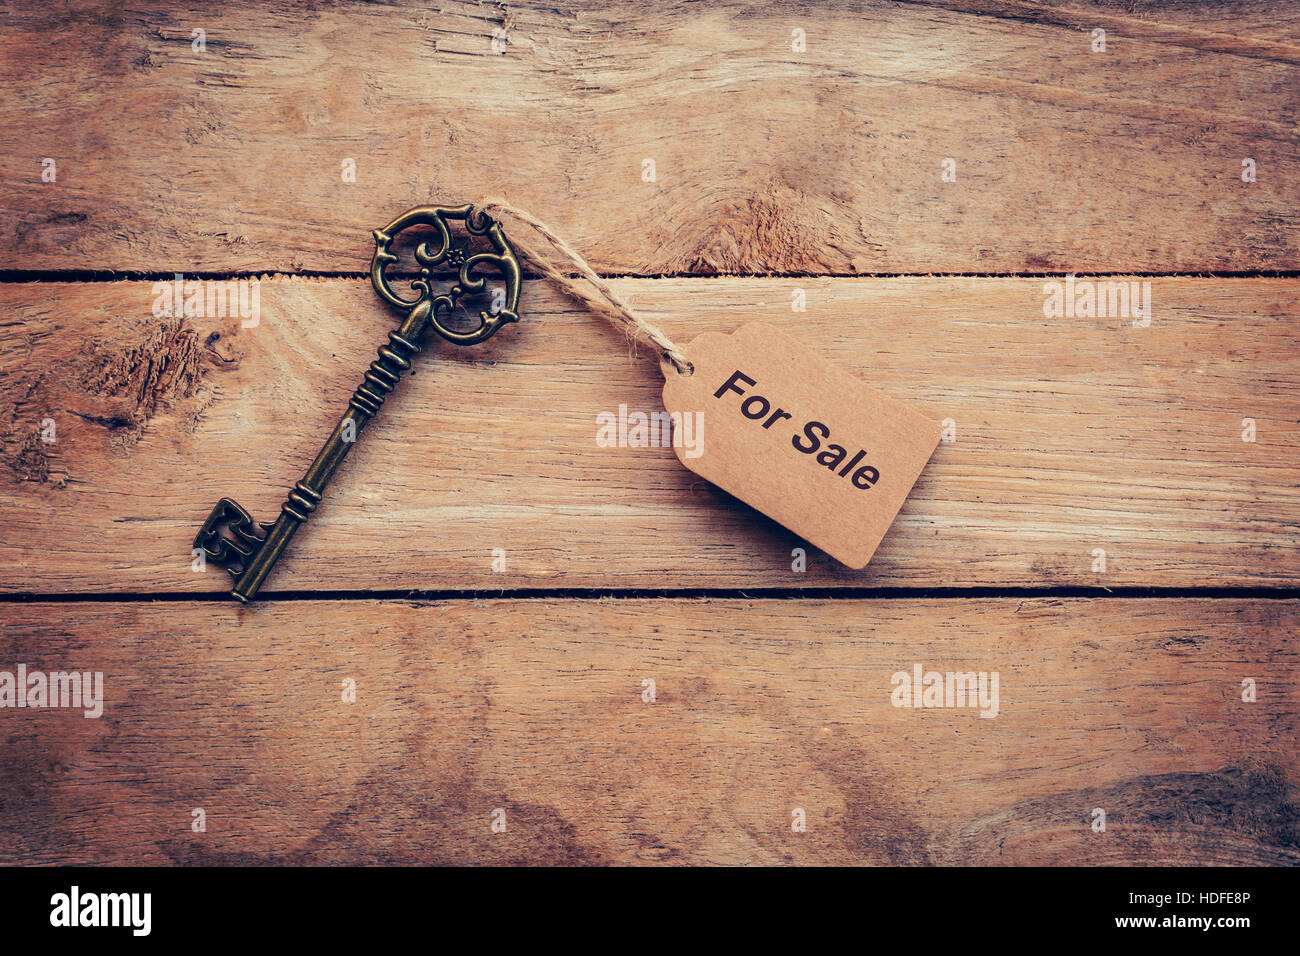 Business concept - Old key vintage on wood with tag For Sale. - Stock Image